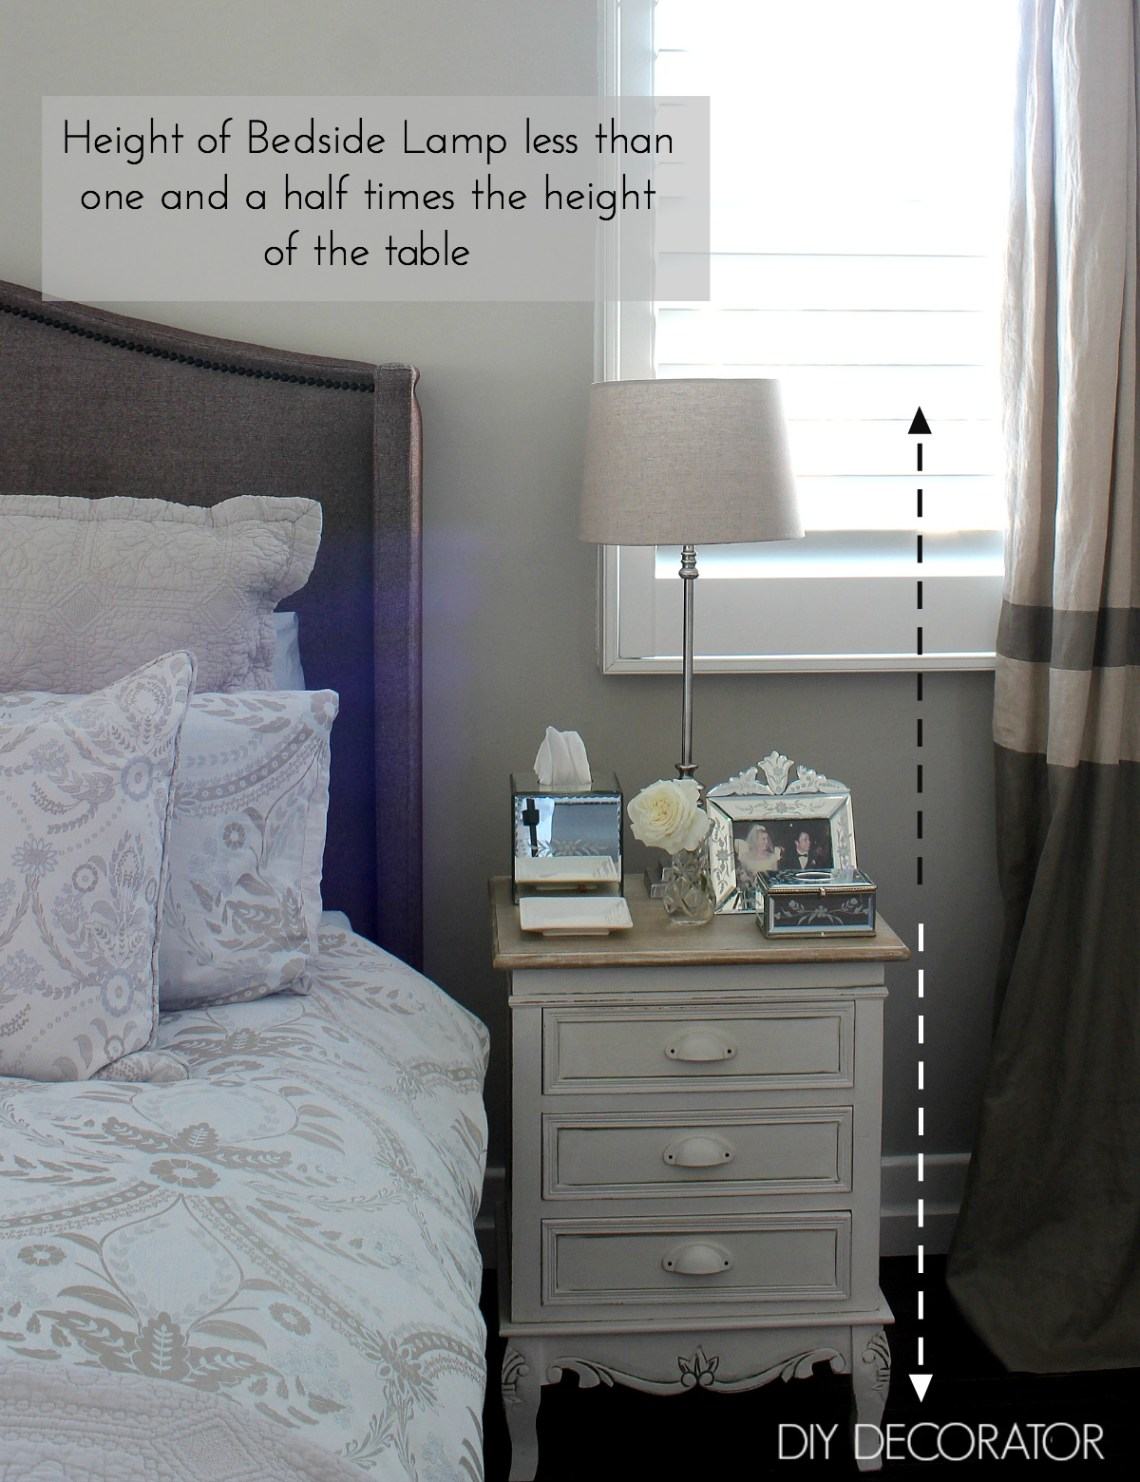 Bedside lamp height